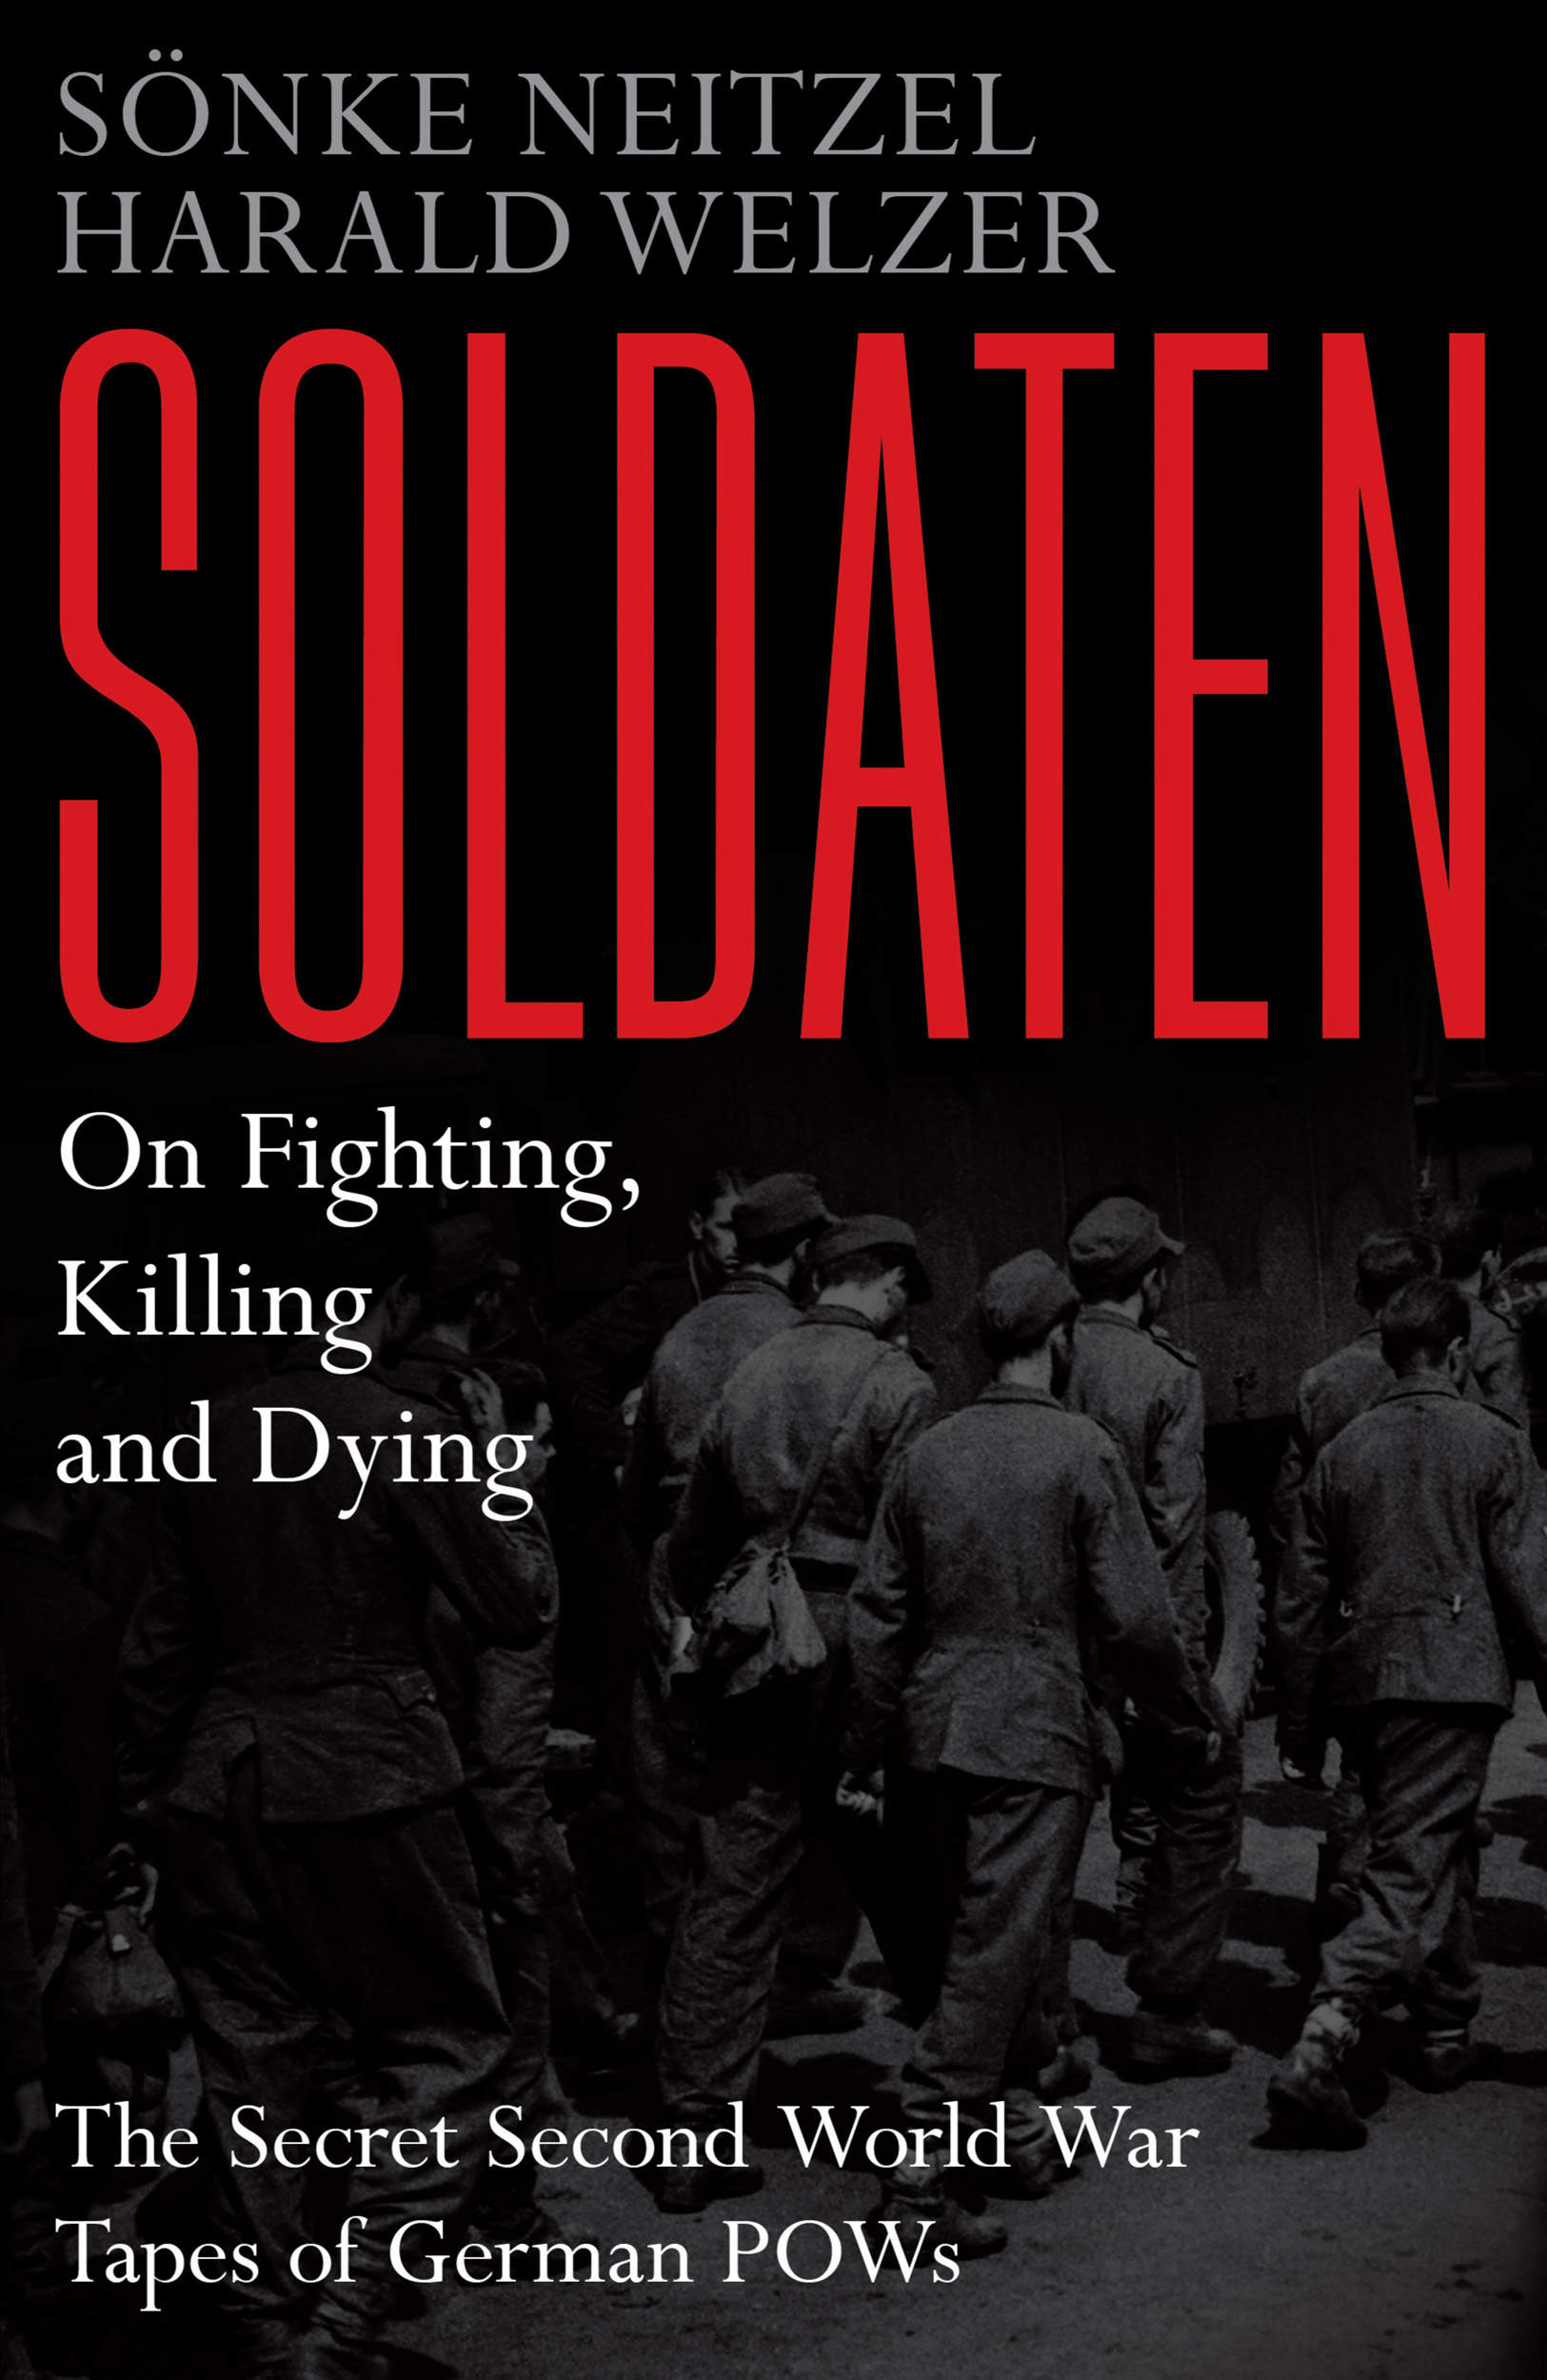 Soldaten - On Fighting, Killing and Dying | Book by Sonke Neitzel ...